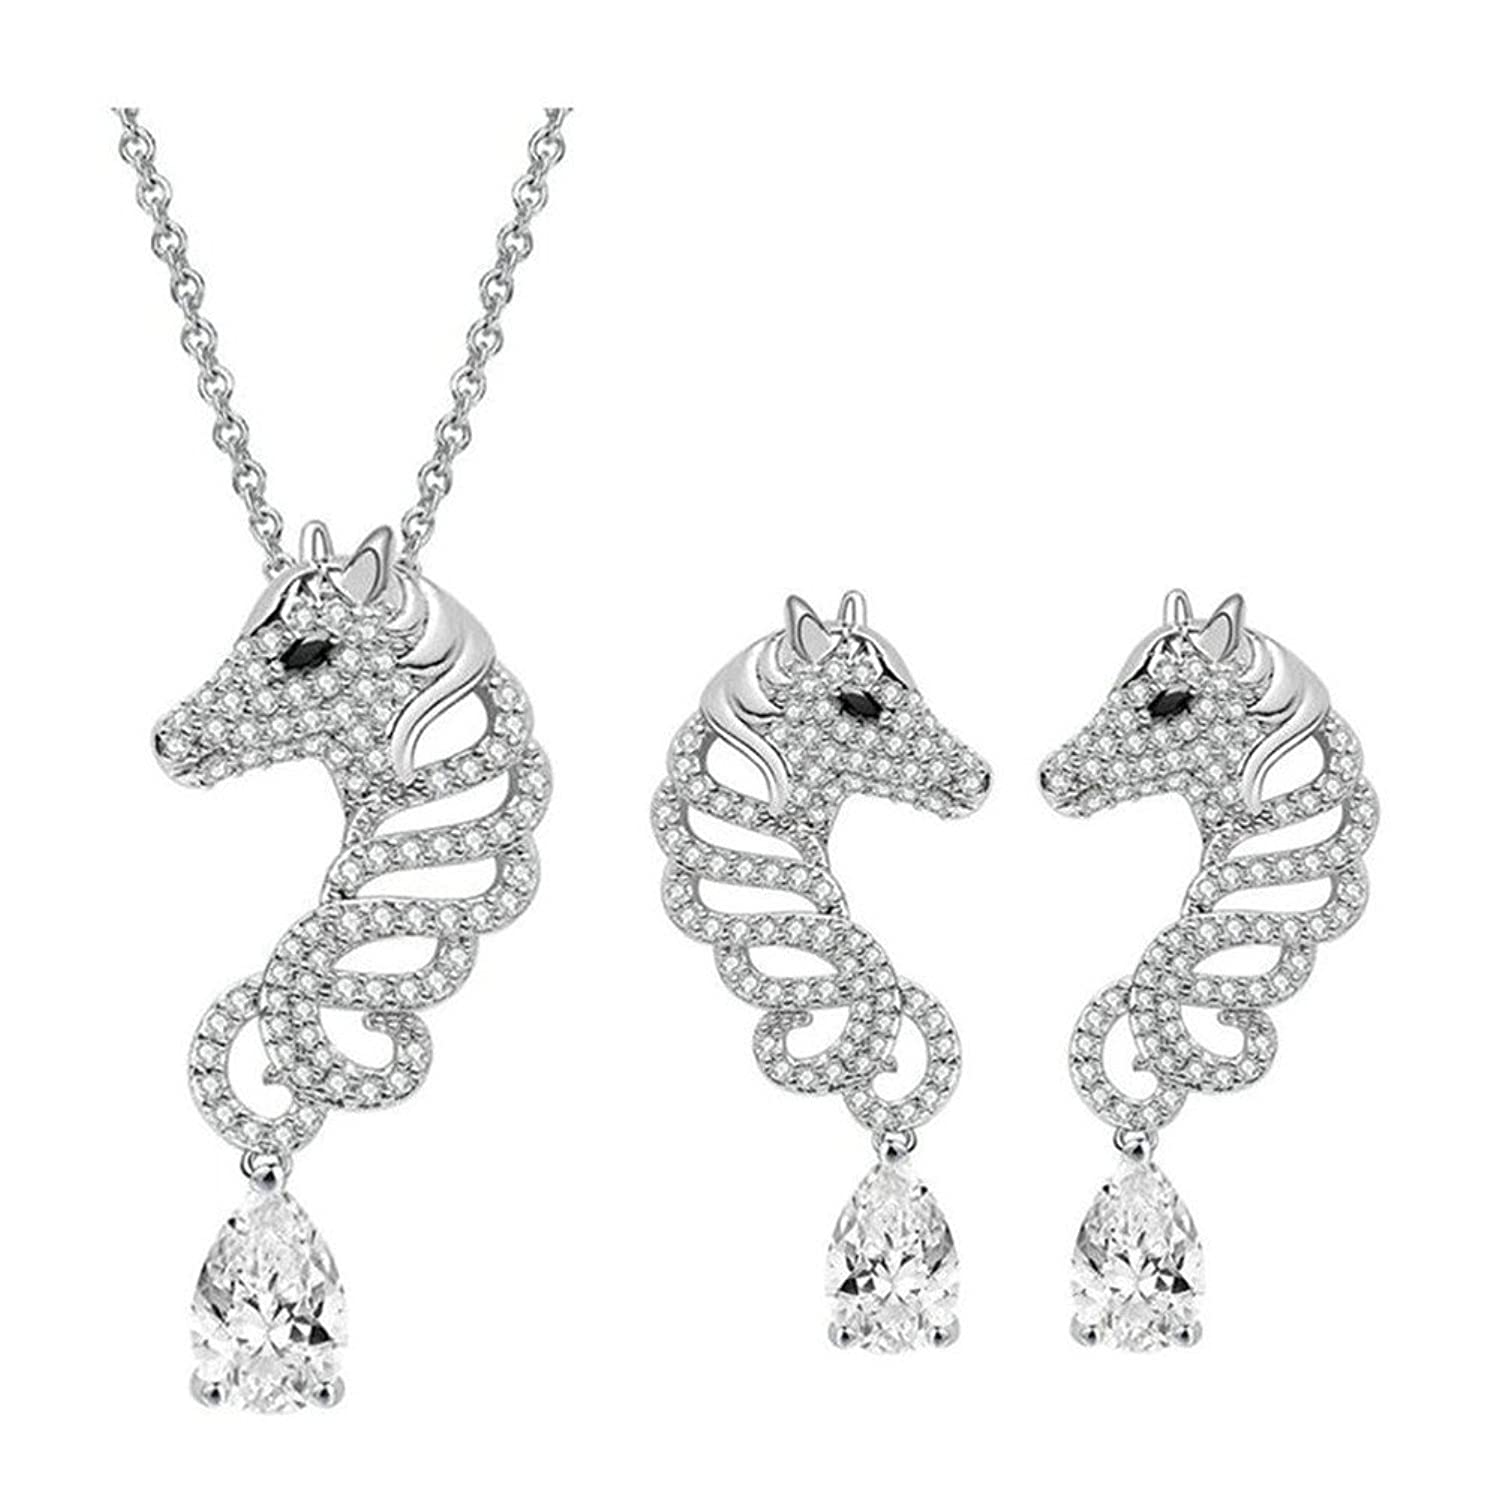 Babao Jewelry Hollow Horse Dazzling Clear CZ Crystal 18K Platinum Plated Pendant Necklace Earrings Set